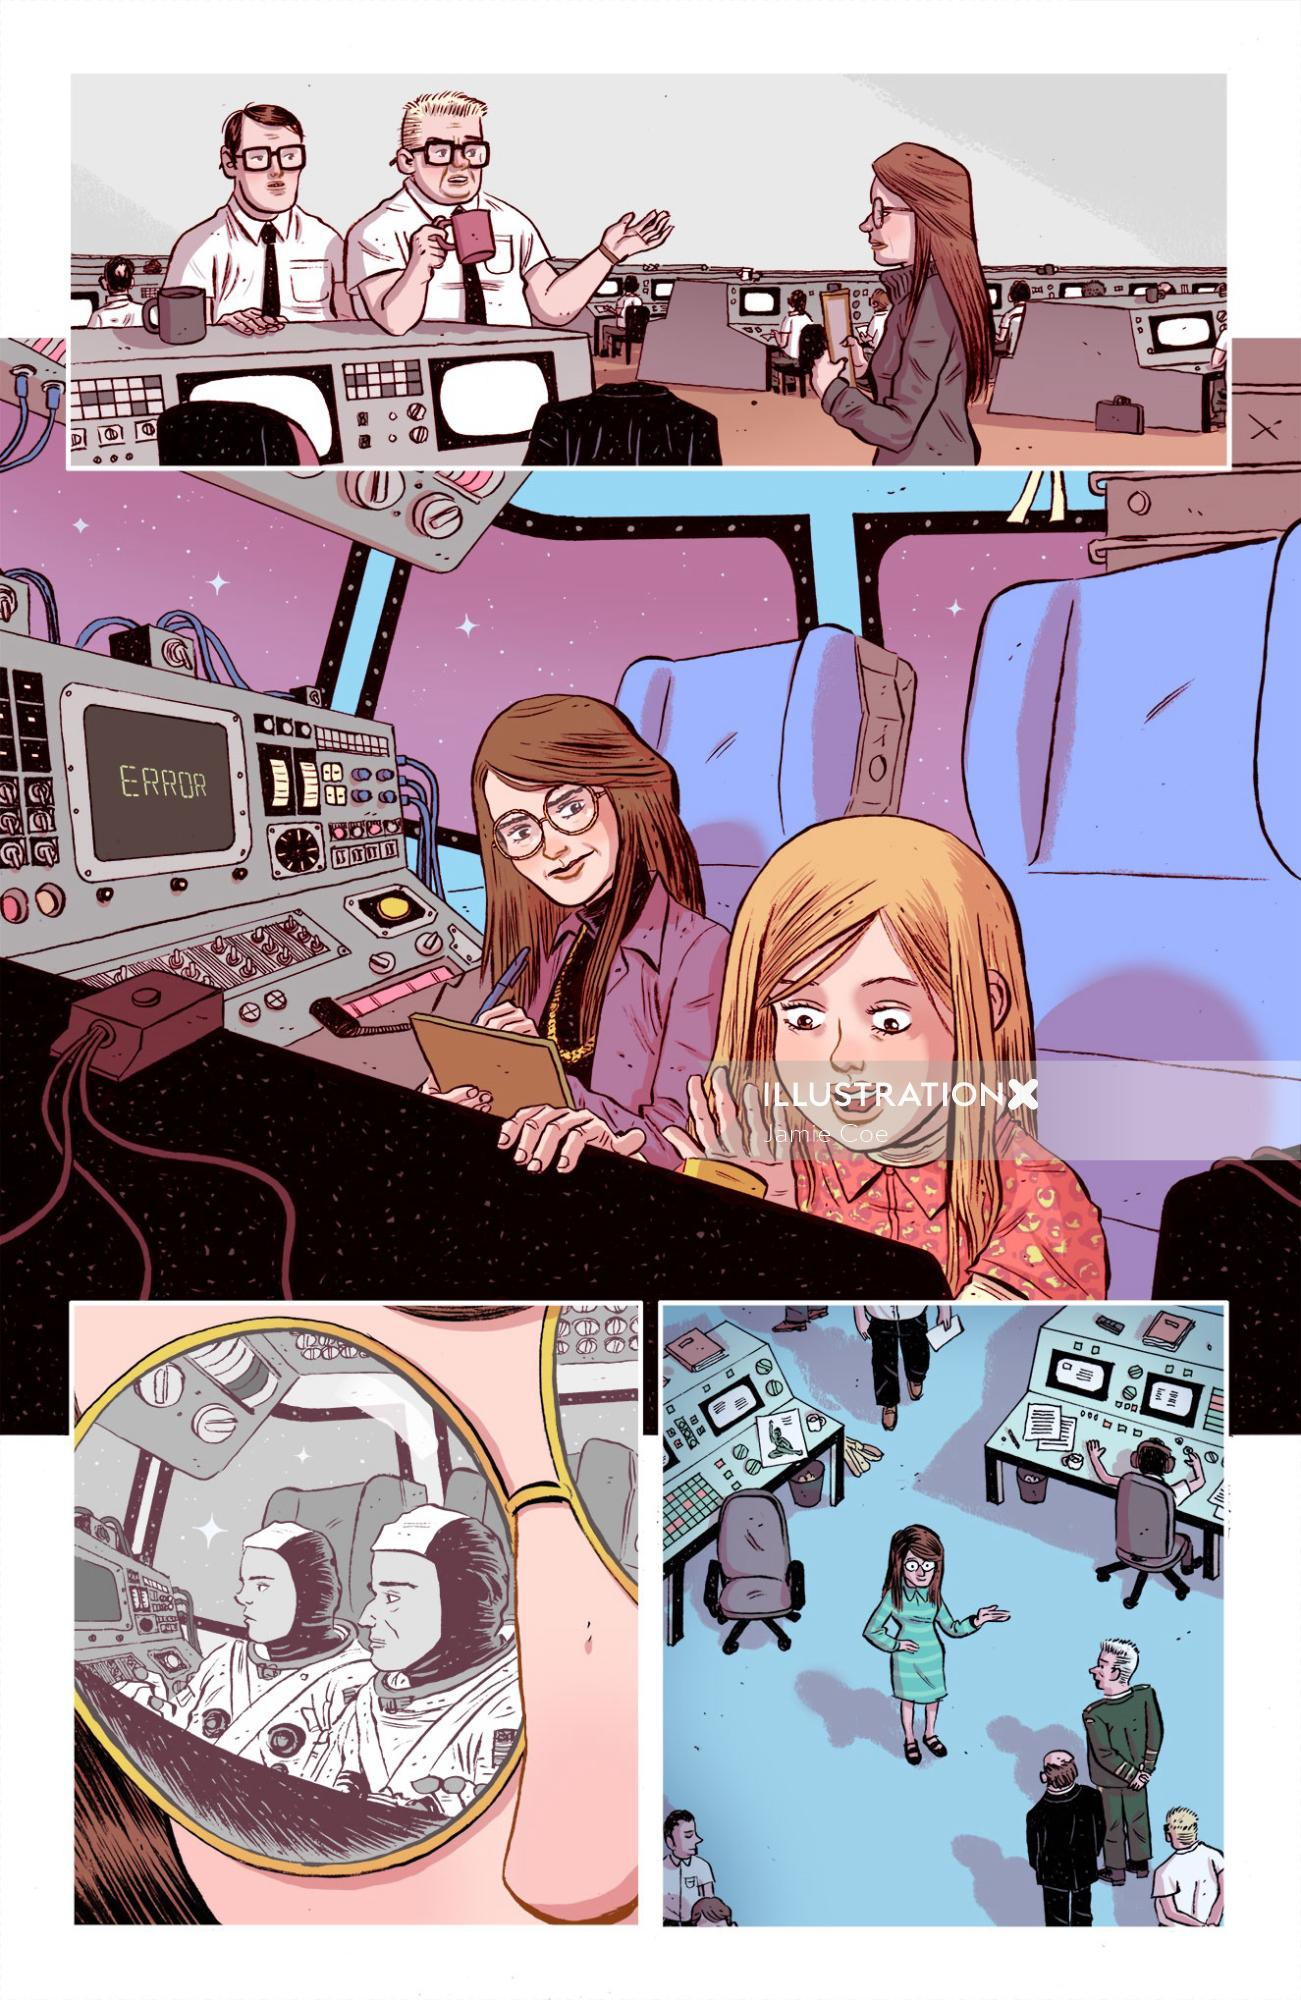 Comic art of space station